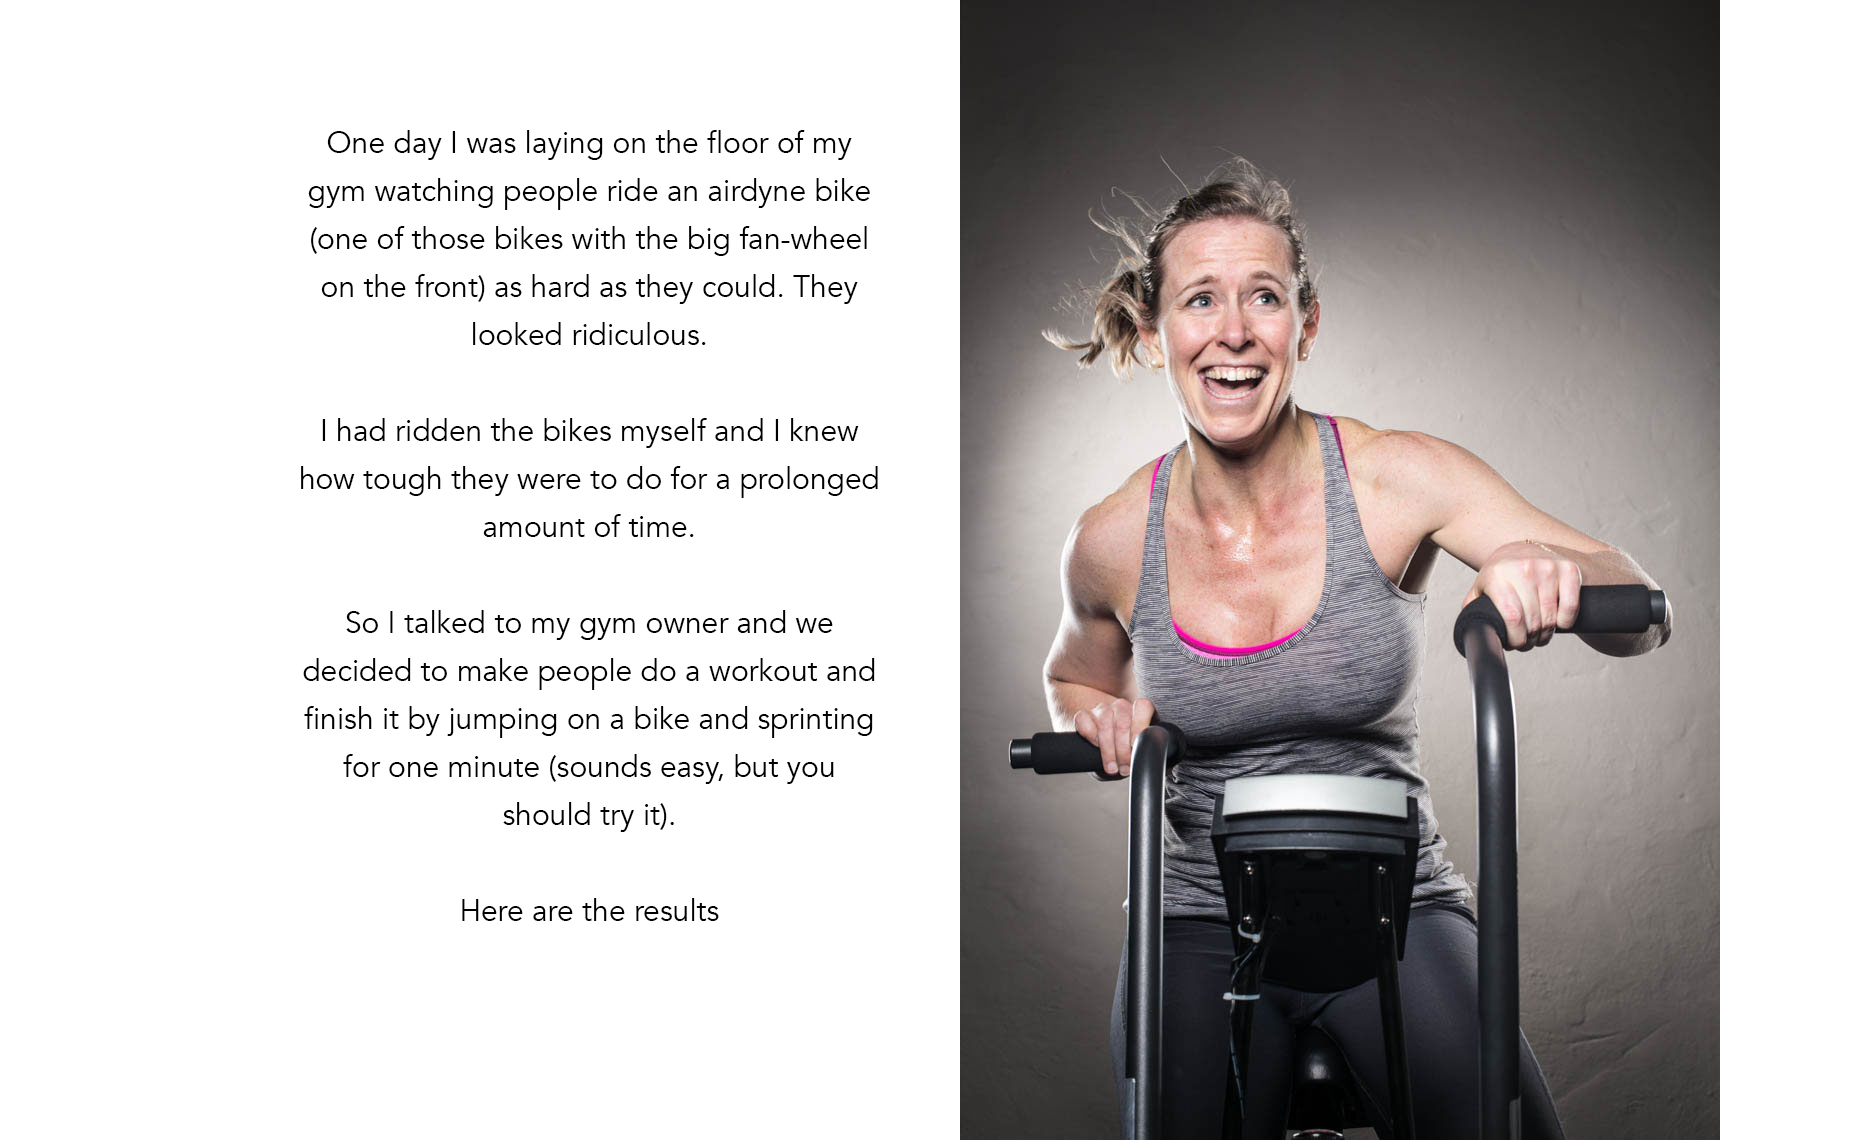 Philadelphia Photographer-Fitness-Portrait-Airdyne-1